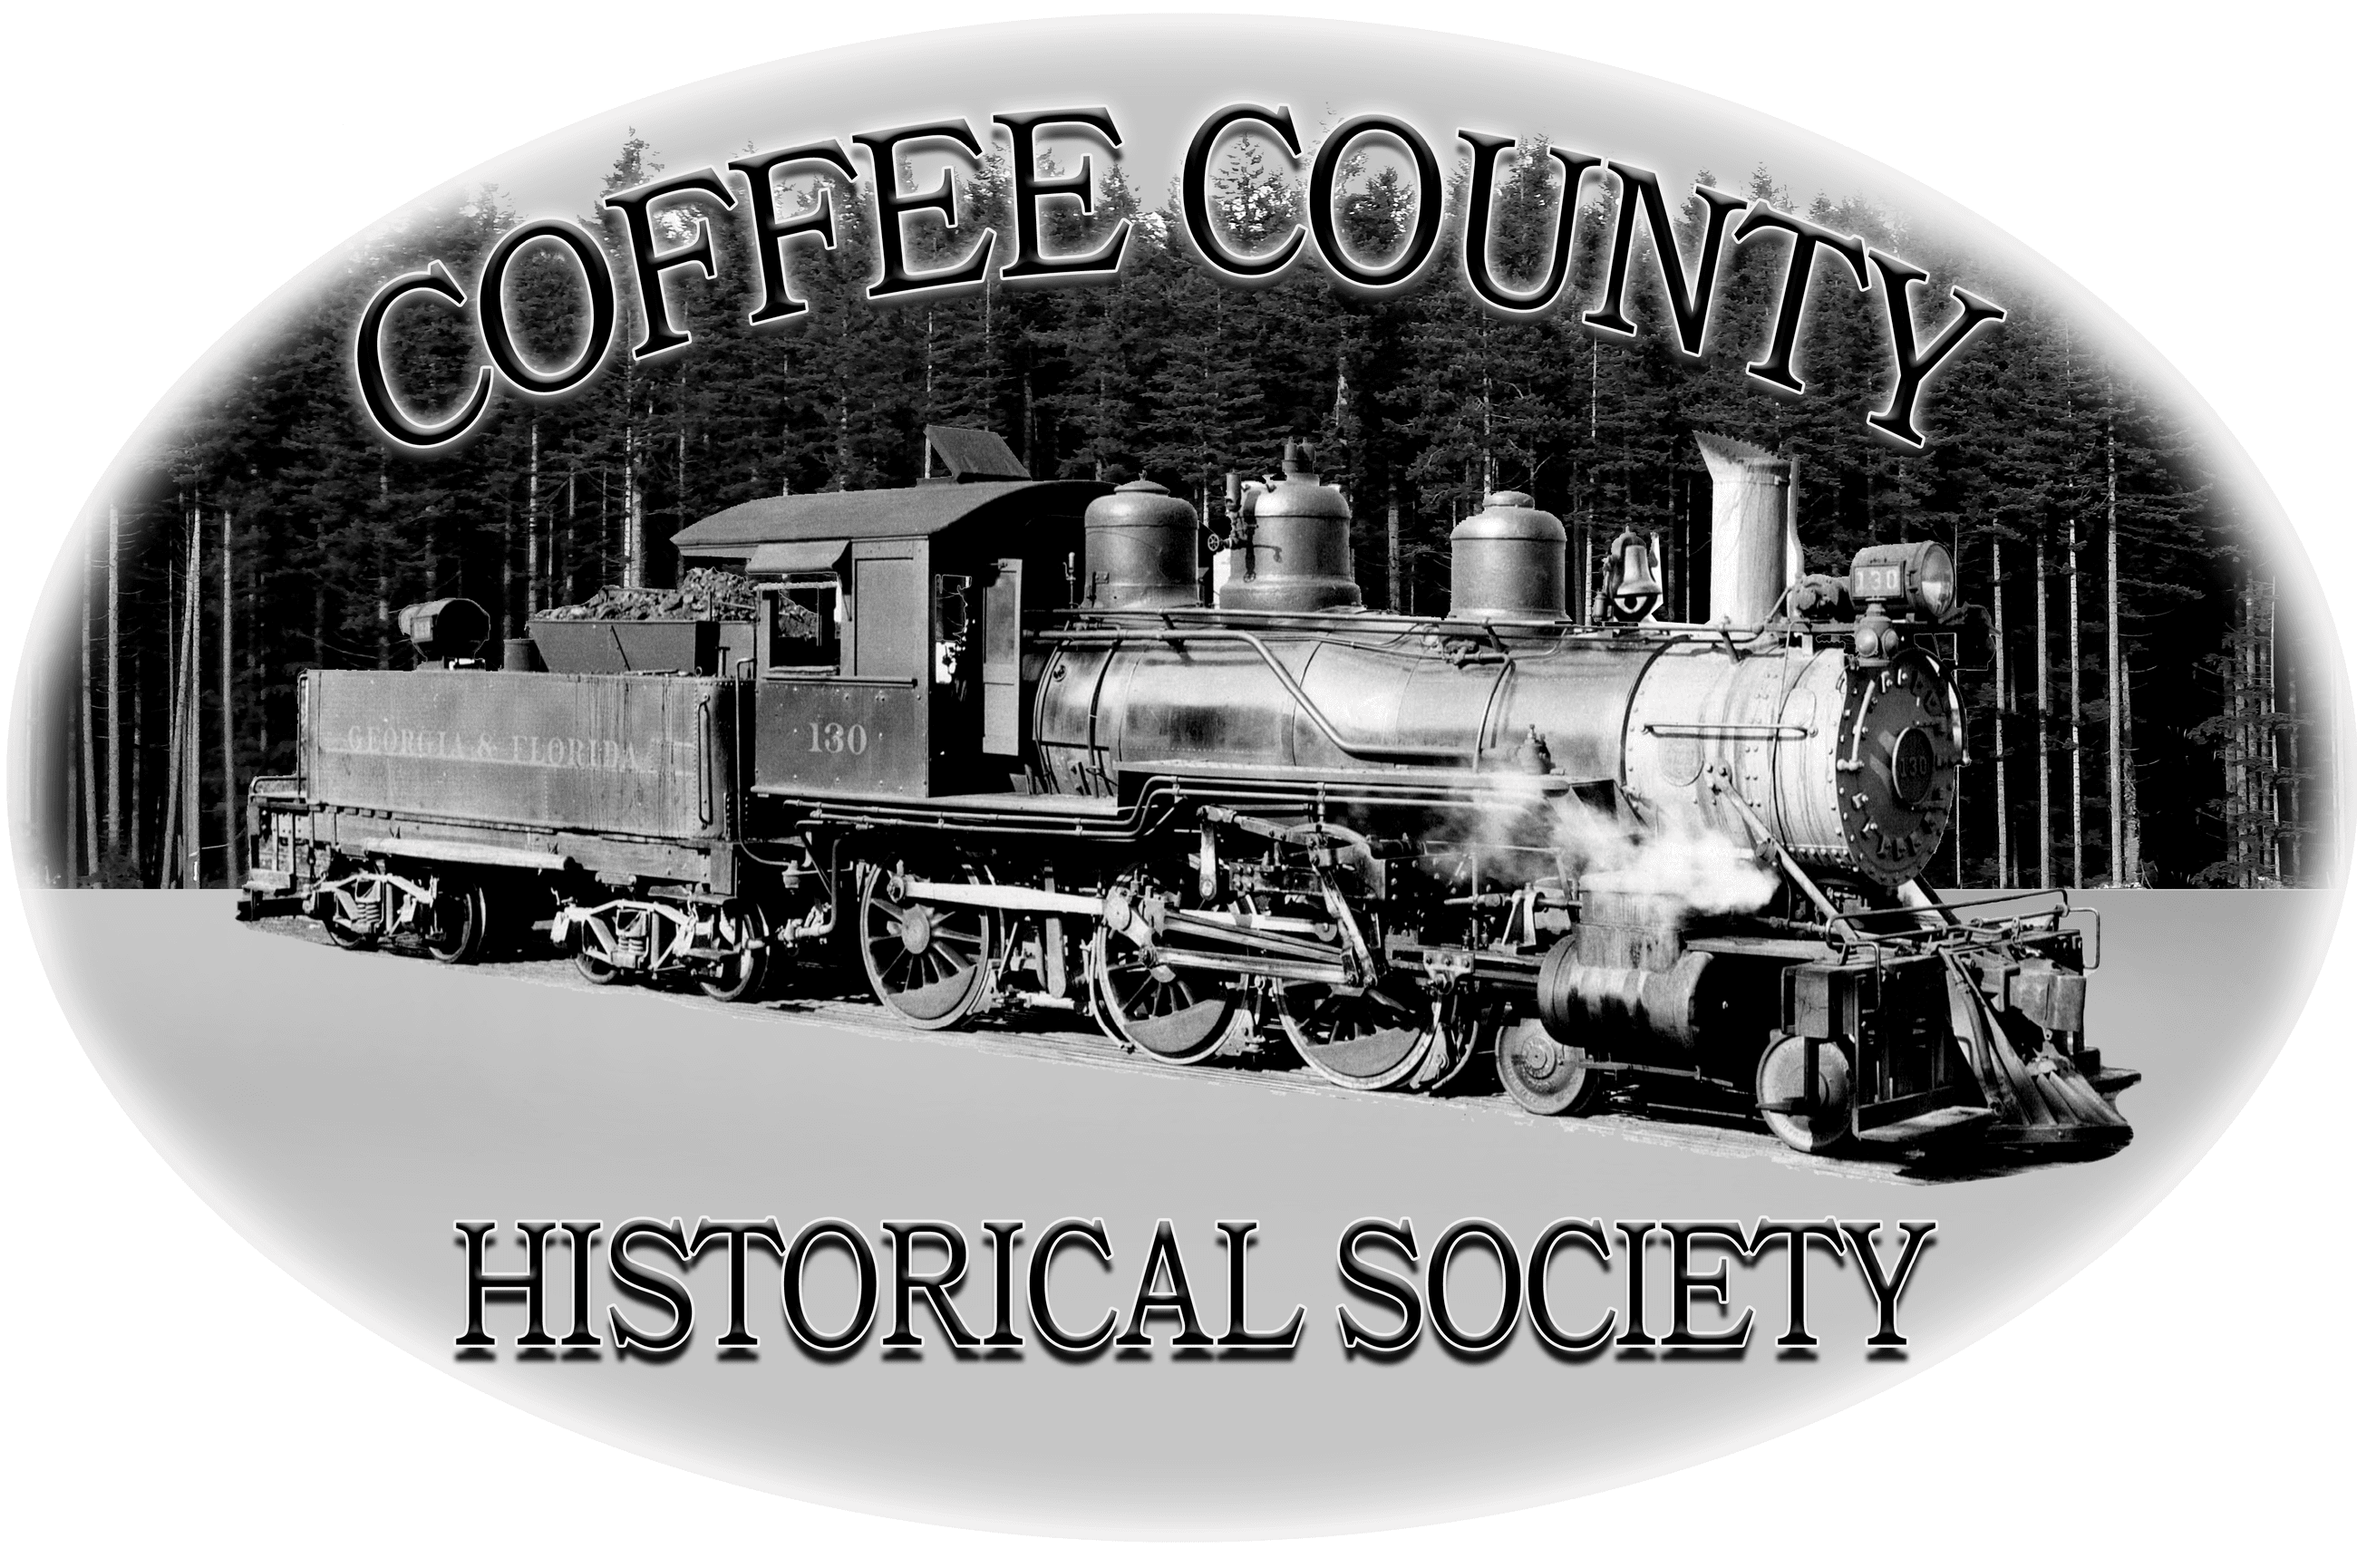 Logo - Coffee Co Historical Society